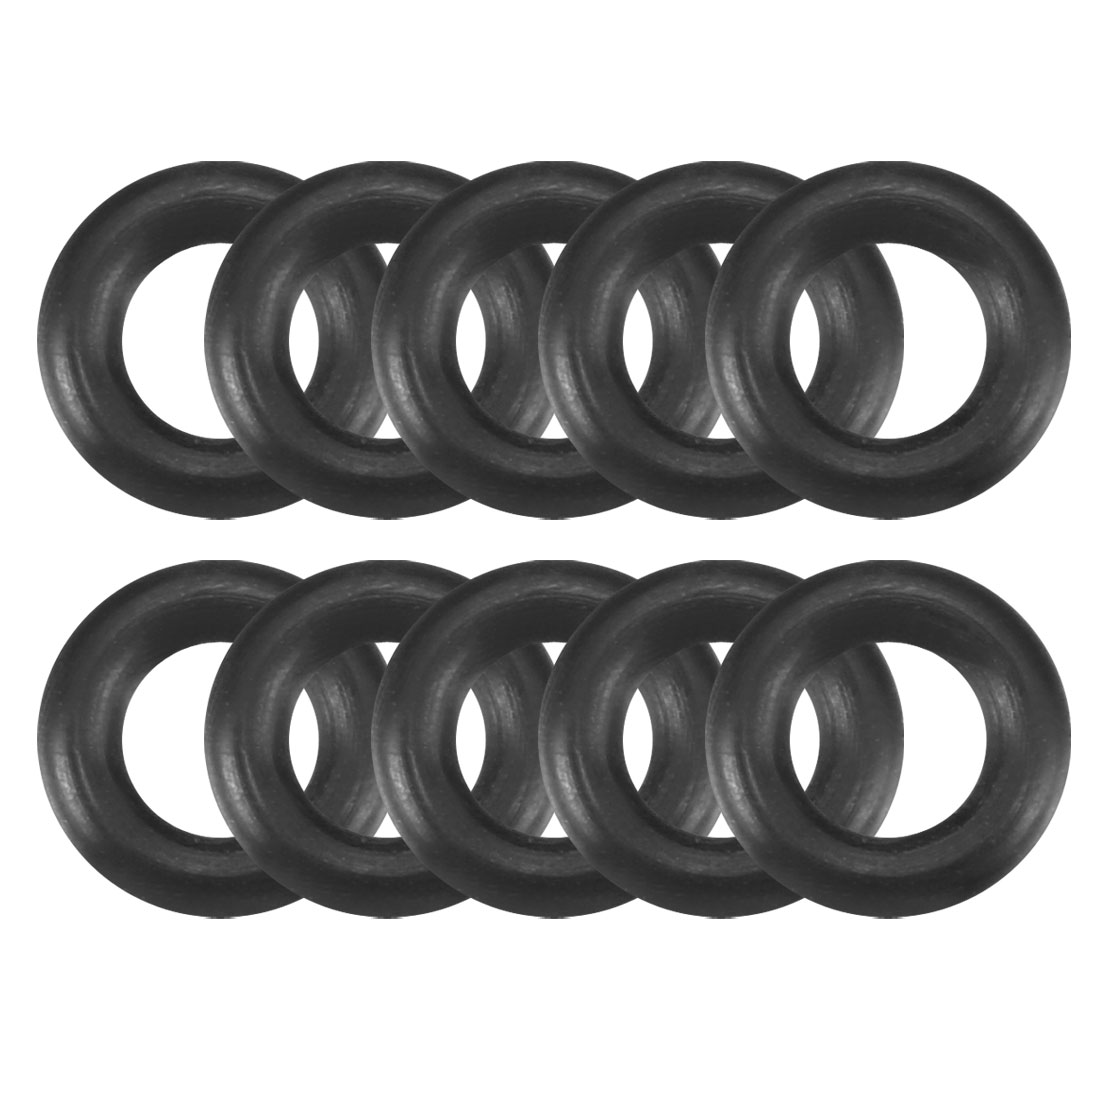 10Pcs Anti Noise Vibration Rubber Screw O-Ring Seal Washers for Case Fan